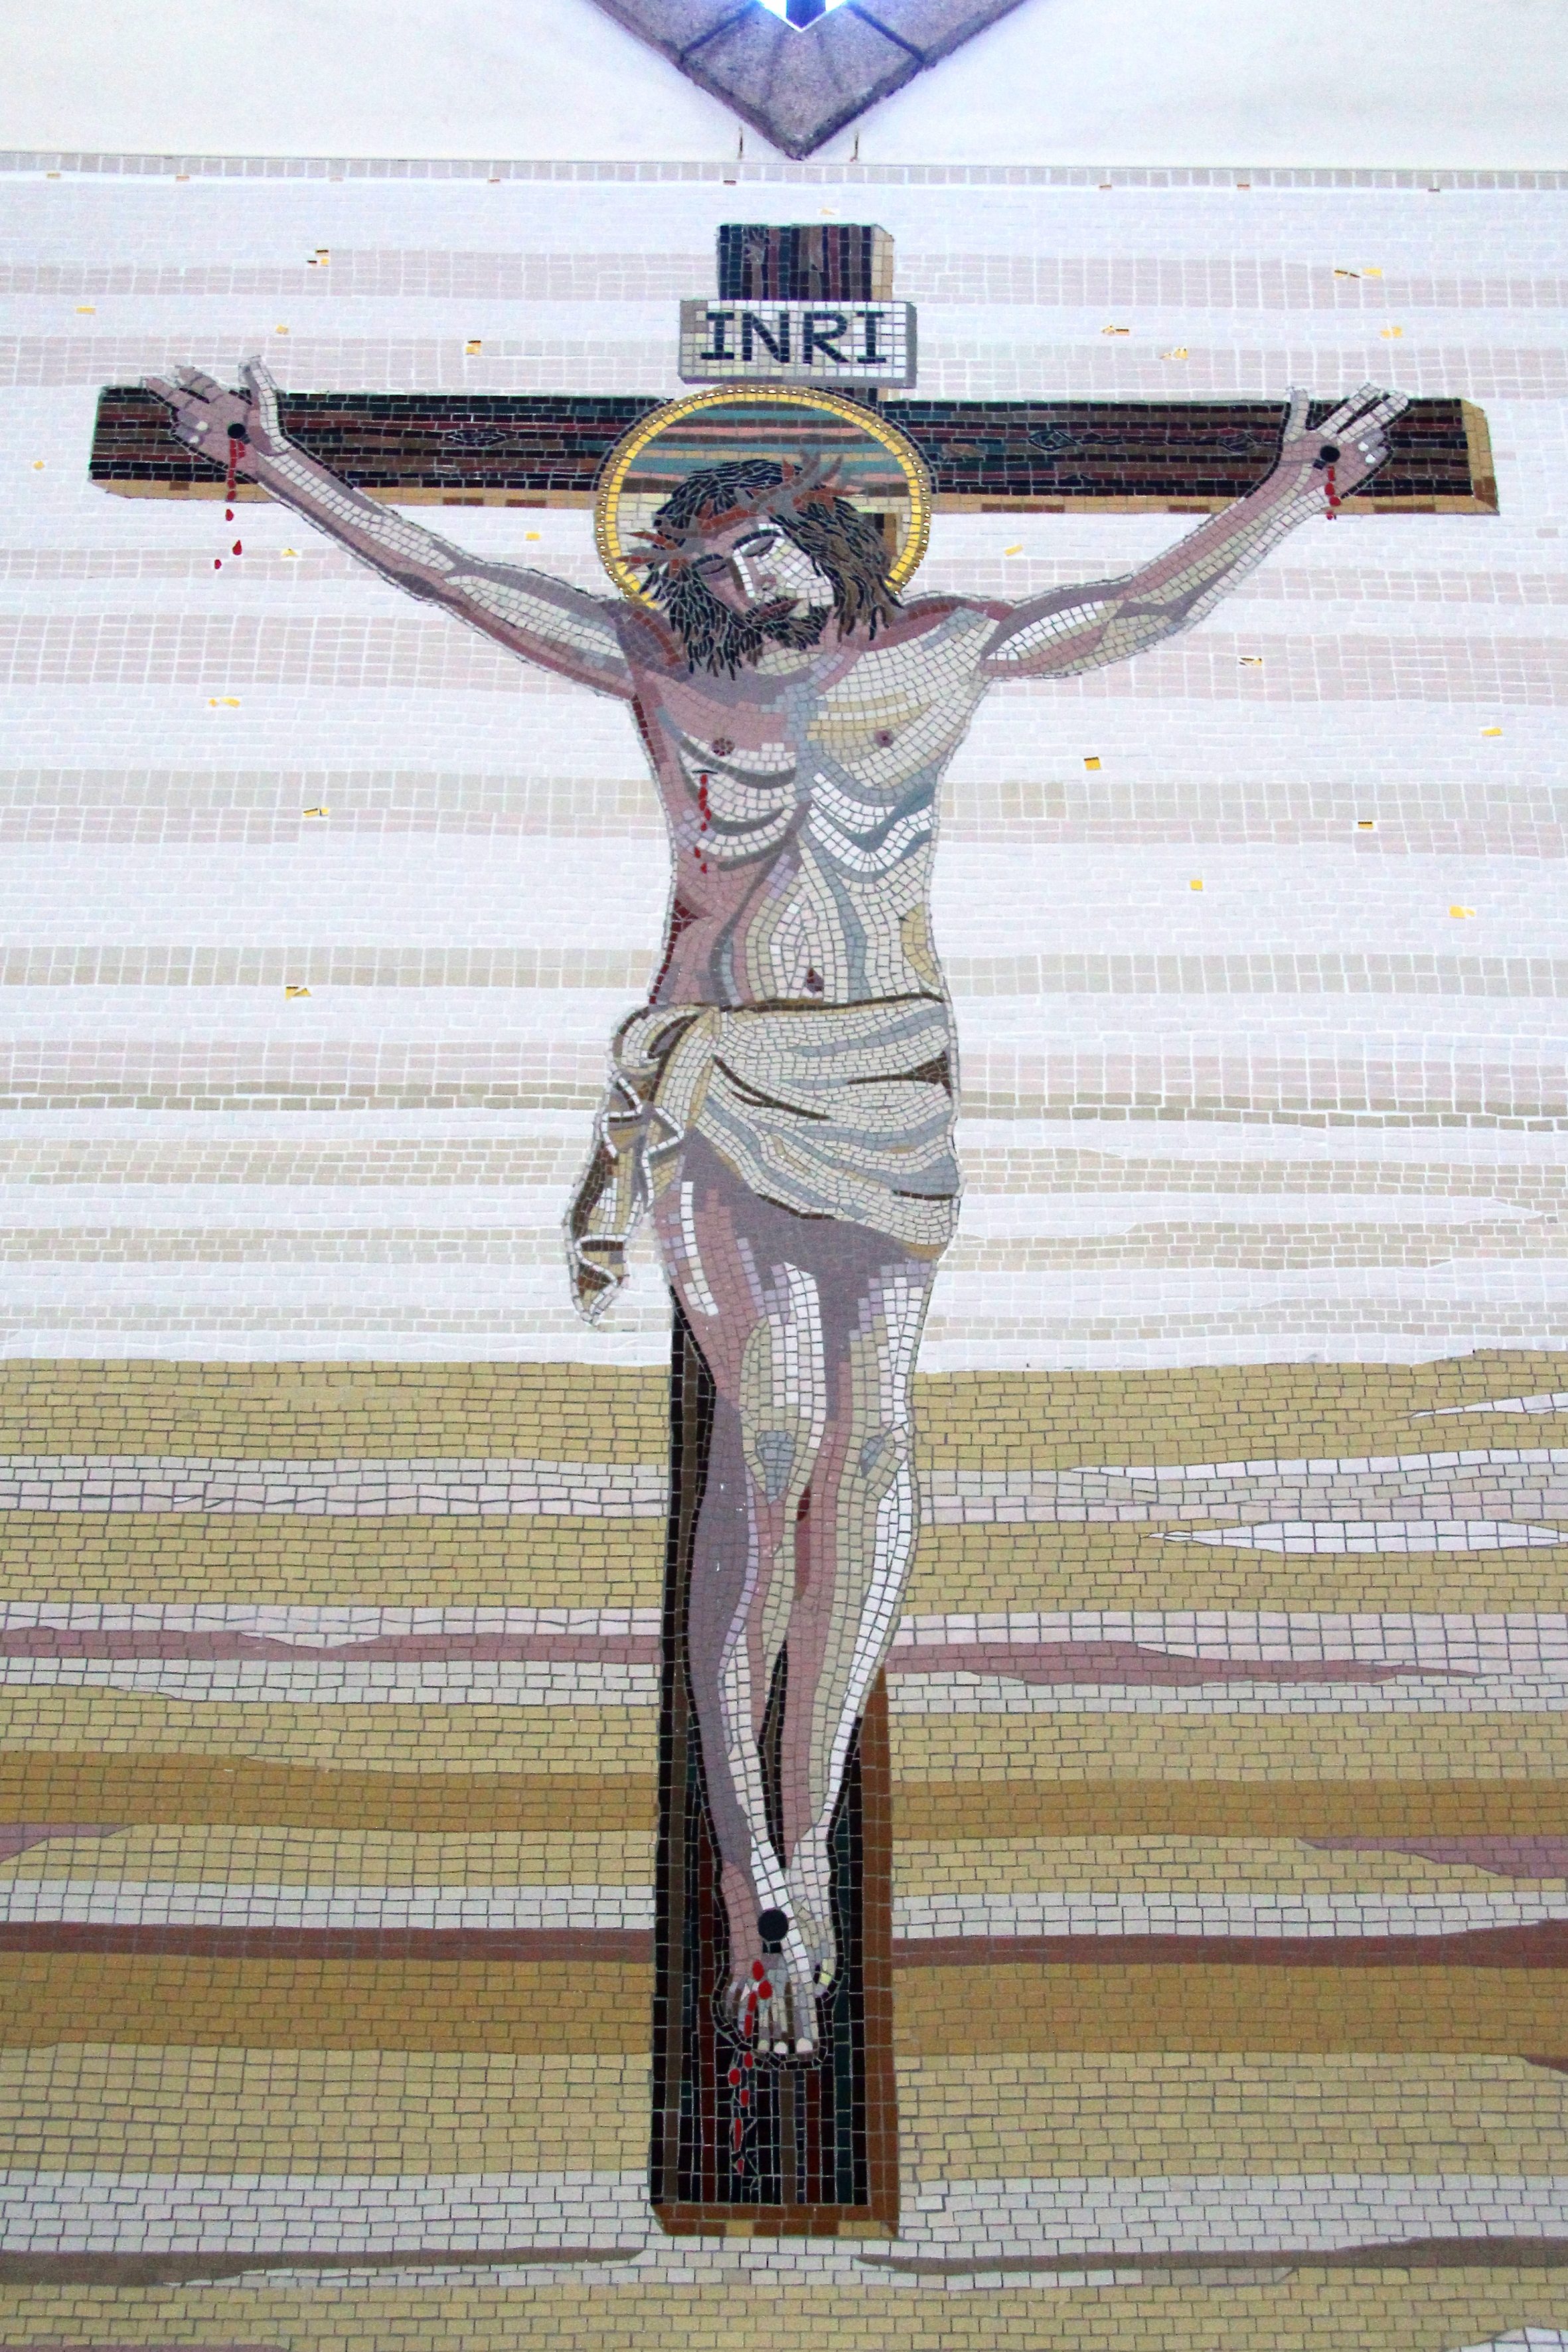 Mosaic of the Crucifixion at Our Lady of the Rosary Catholic Church, Buckley, North Wales. Matt porcelain tile, smalti on fibreglass mesh, cement fixed in situ onto block wall. Approximately 10ft. x 8ft.